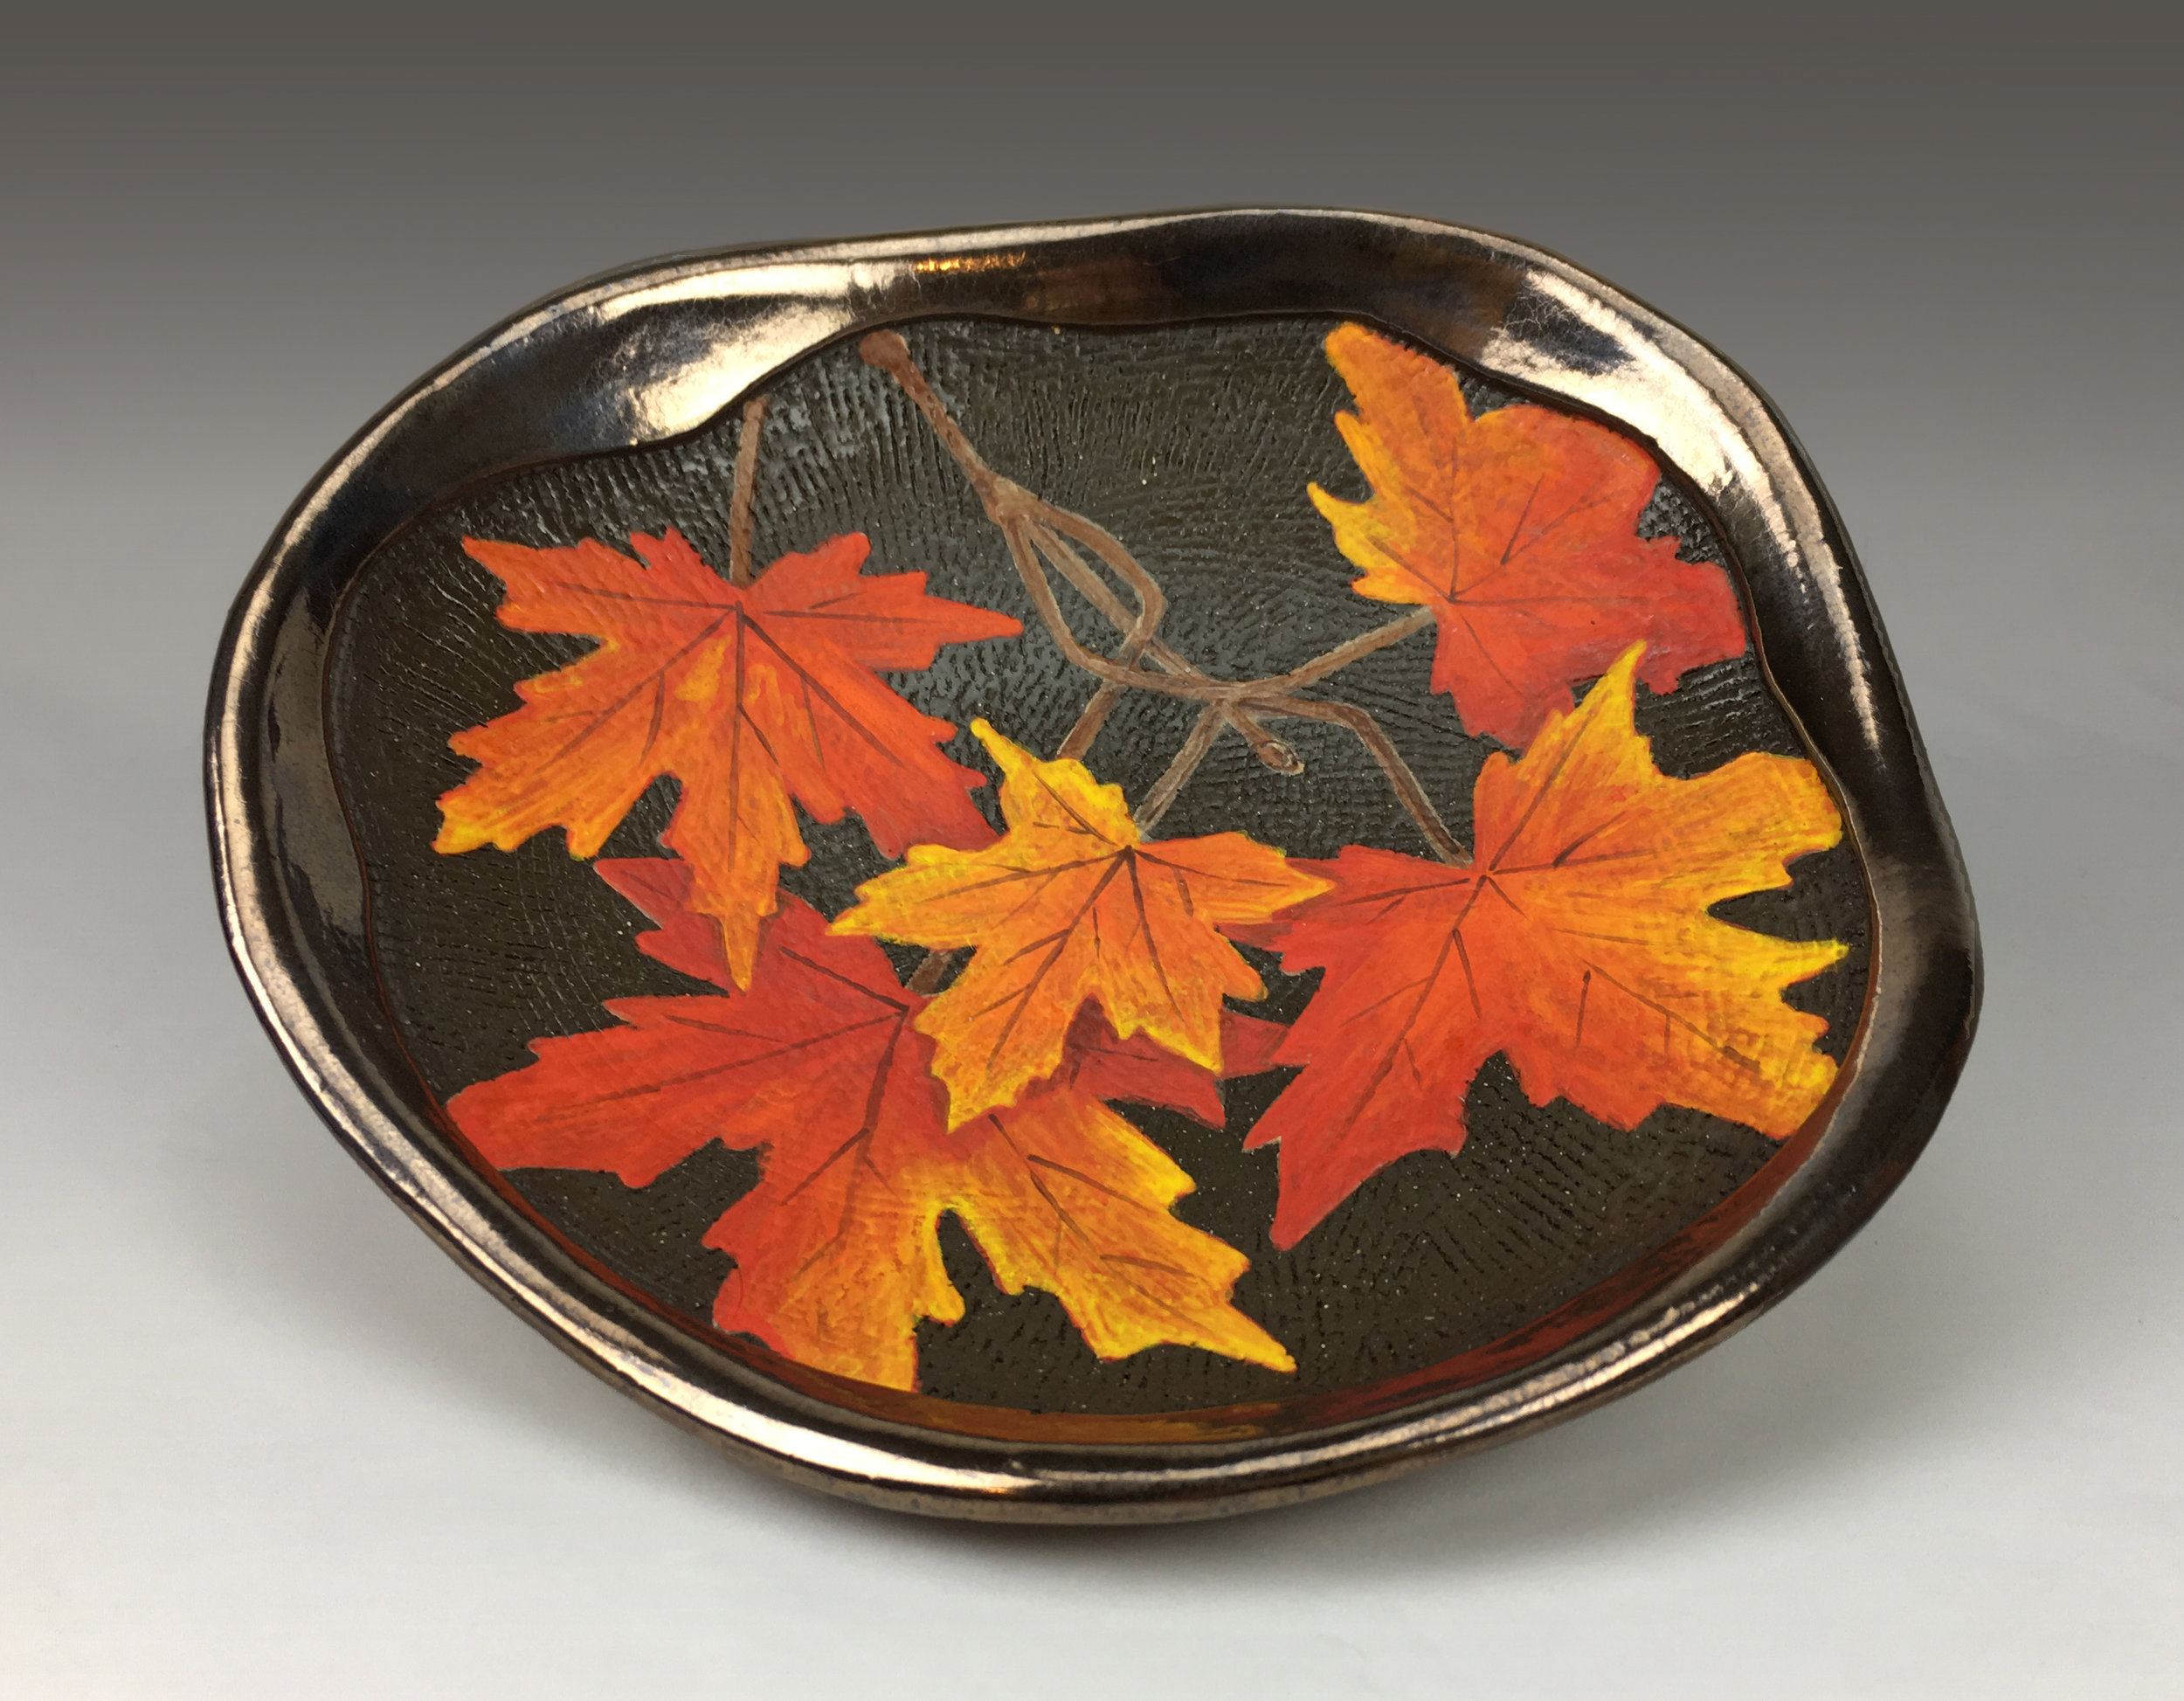 Marina_Smelik_Plate with Maple Branch.jpg